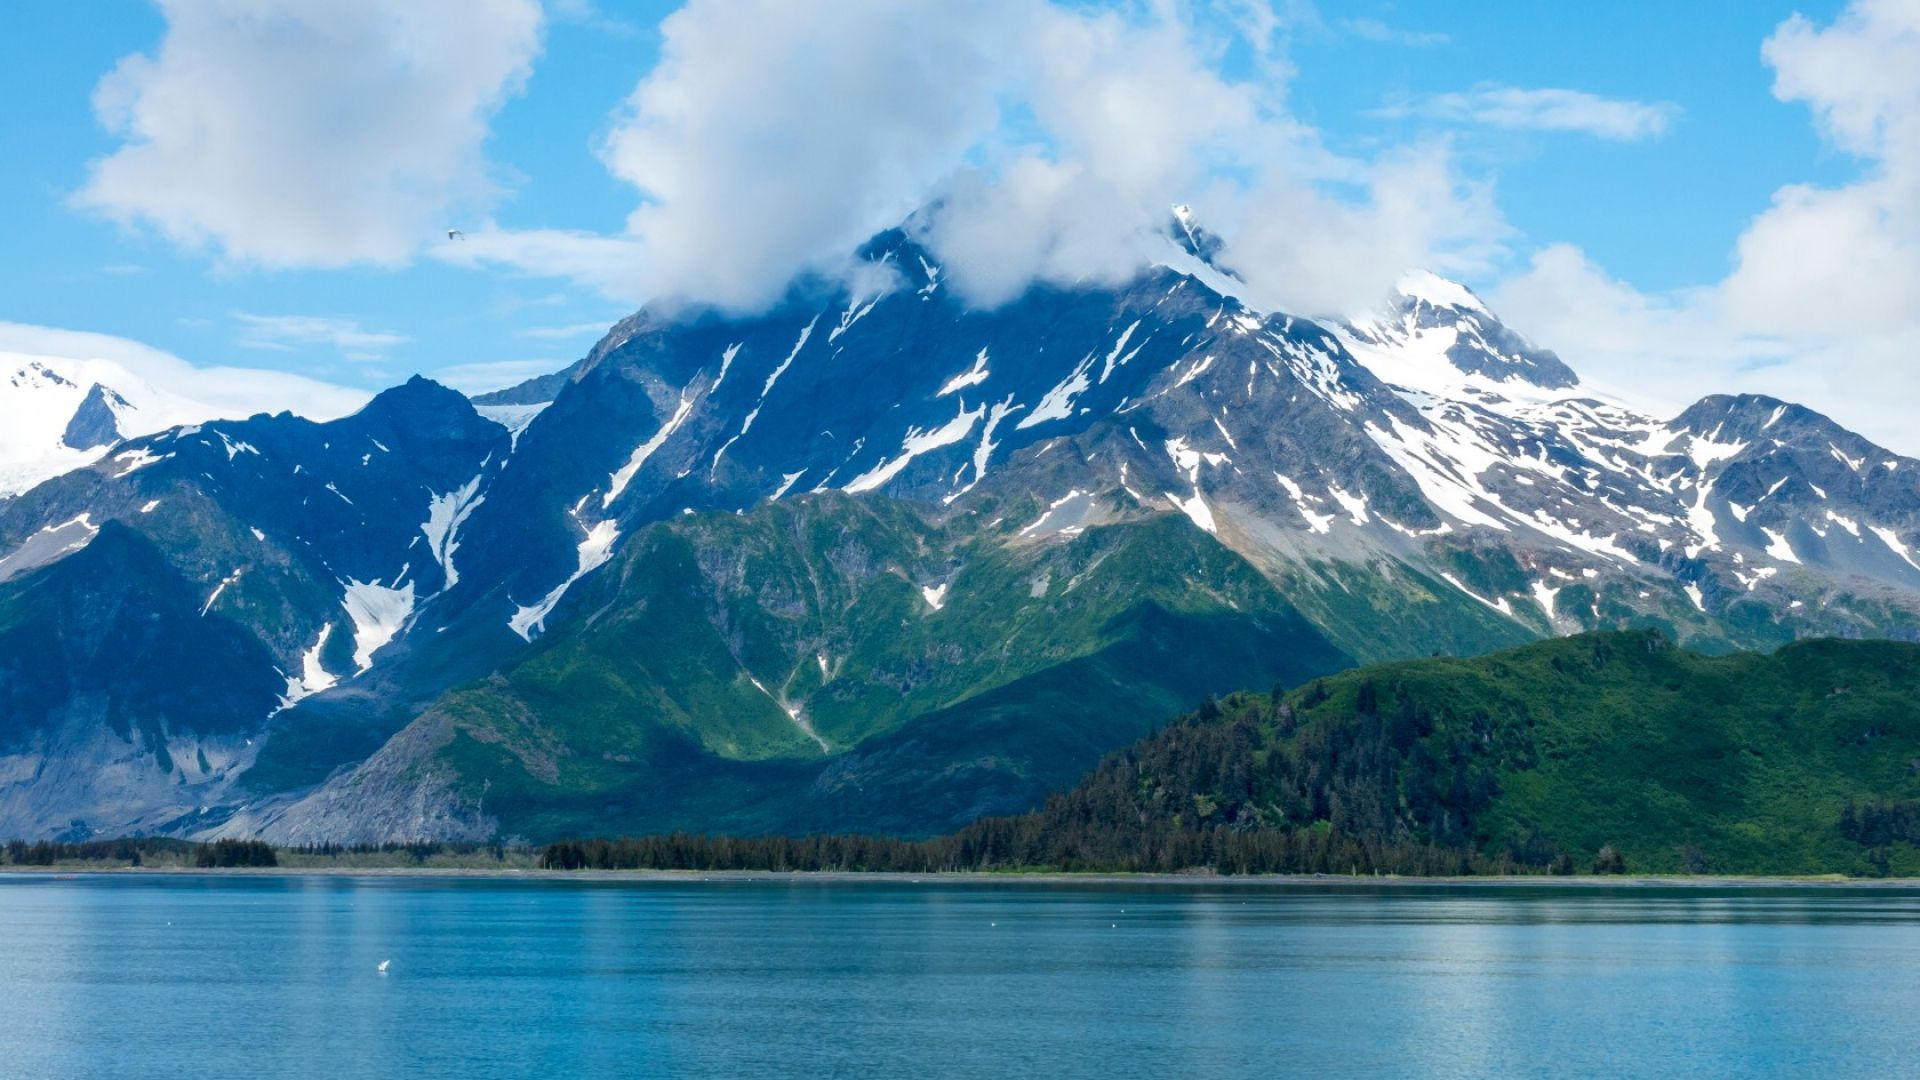 Full hd 1080p alaska wallpapers hd desktop backgrounds for Full hd 1080p wallpapers